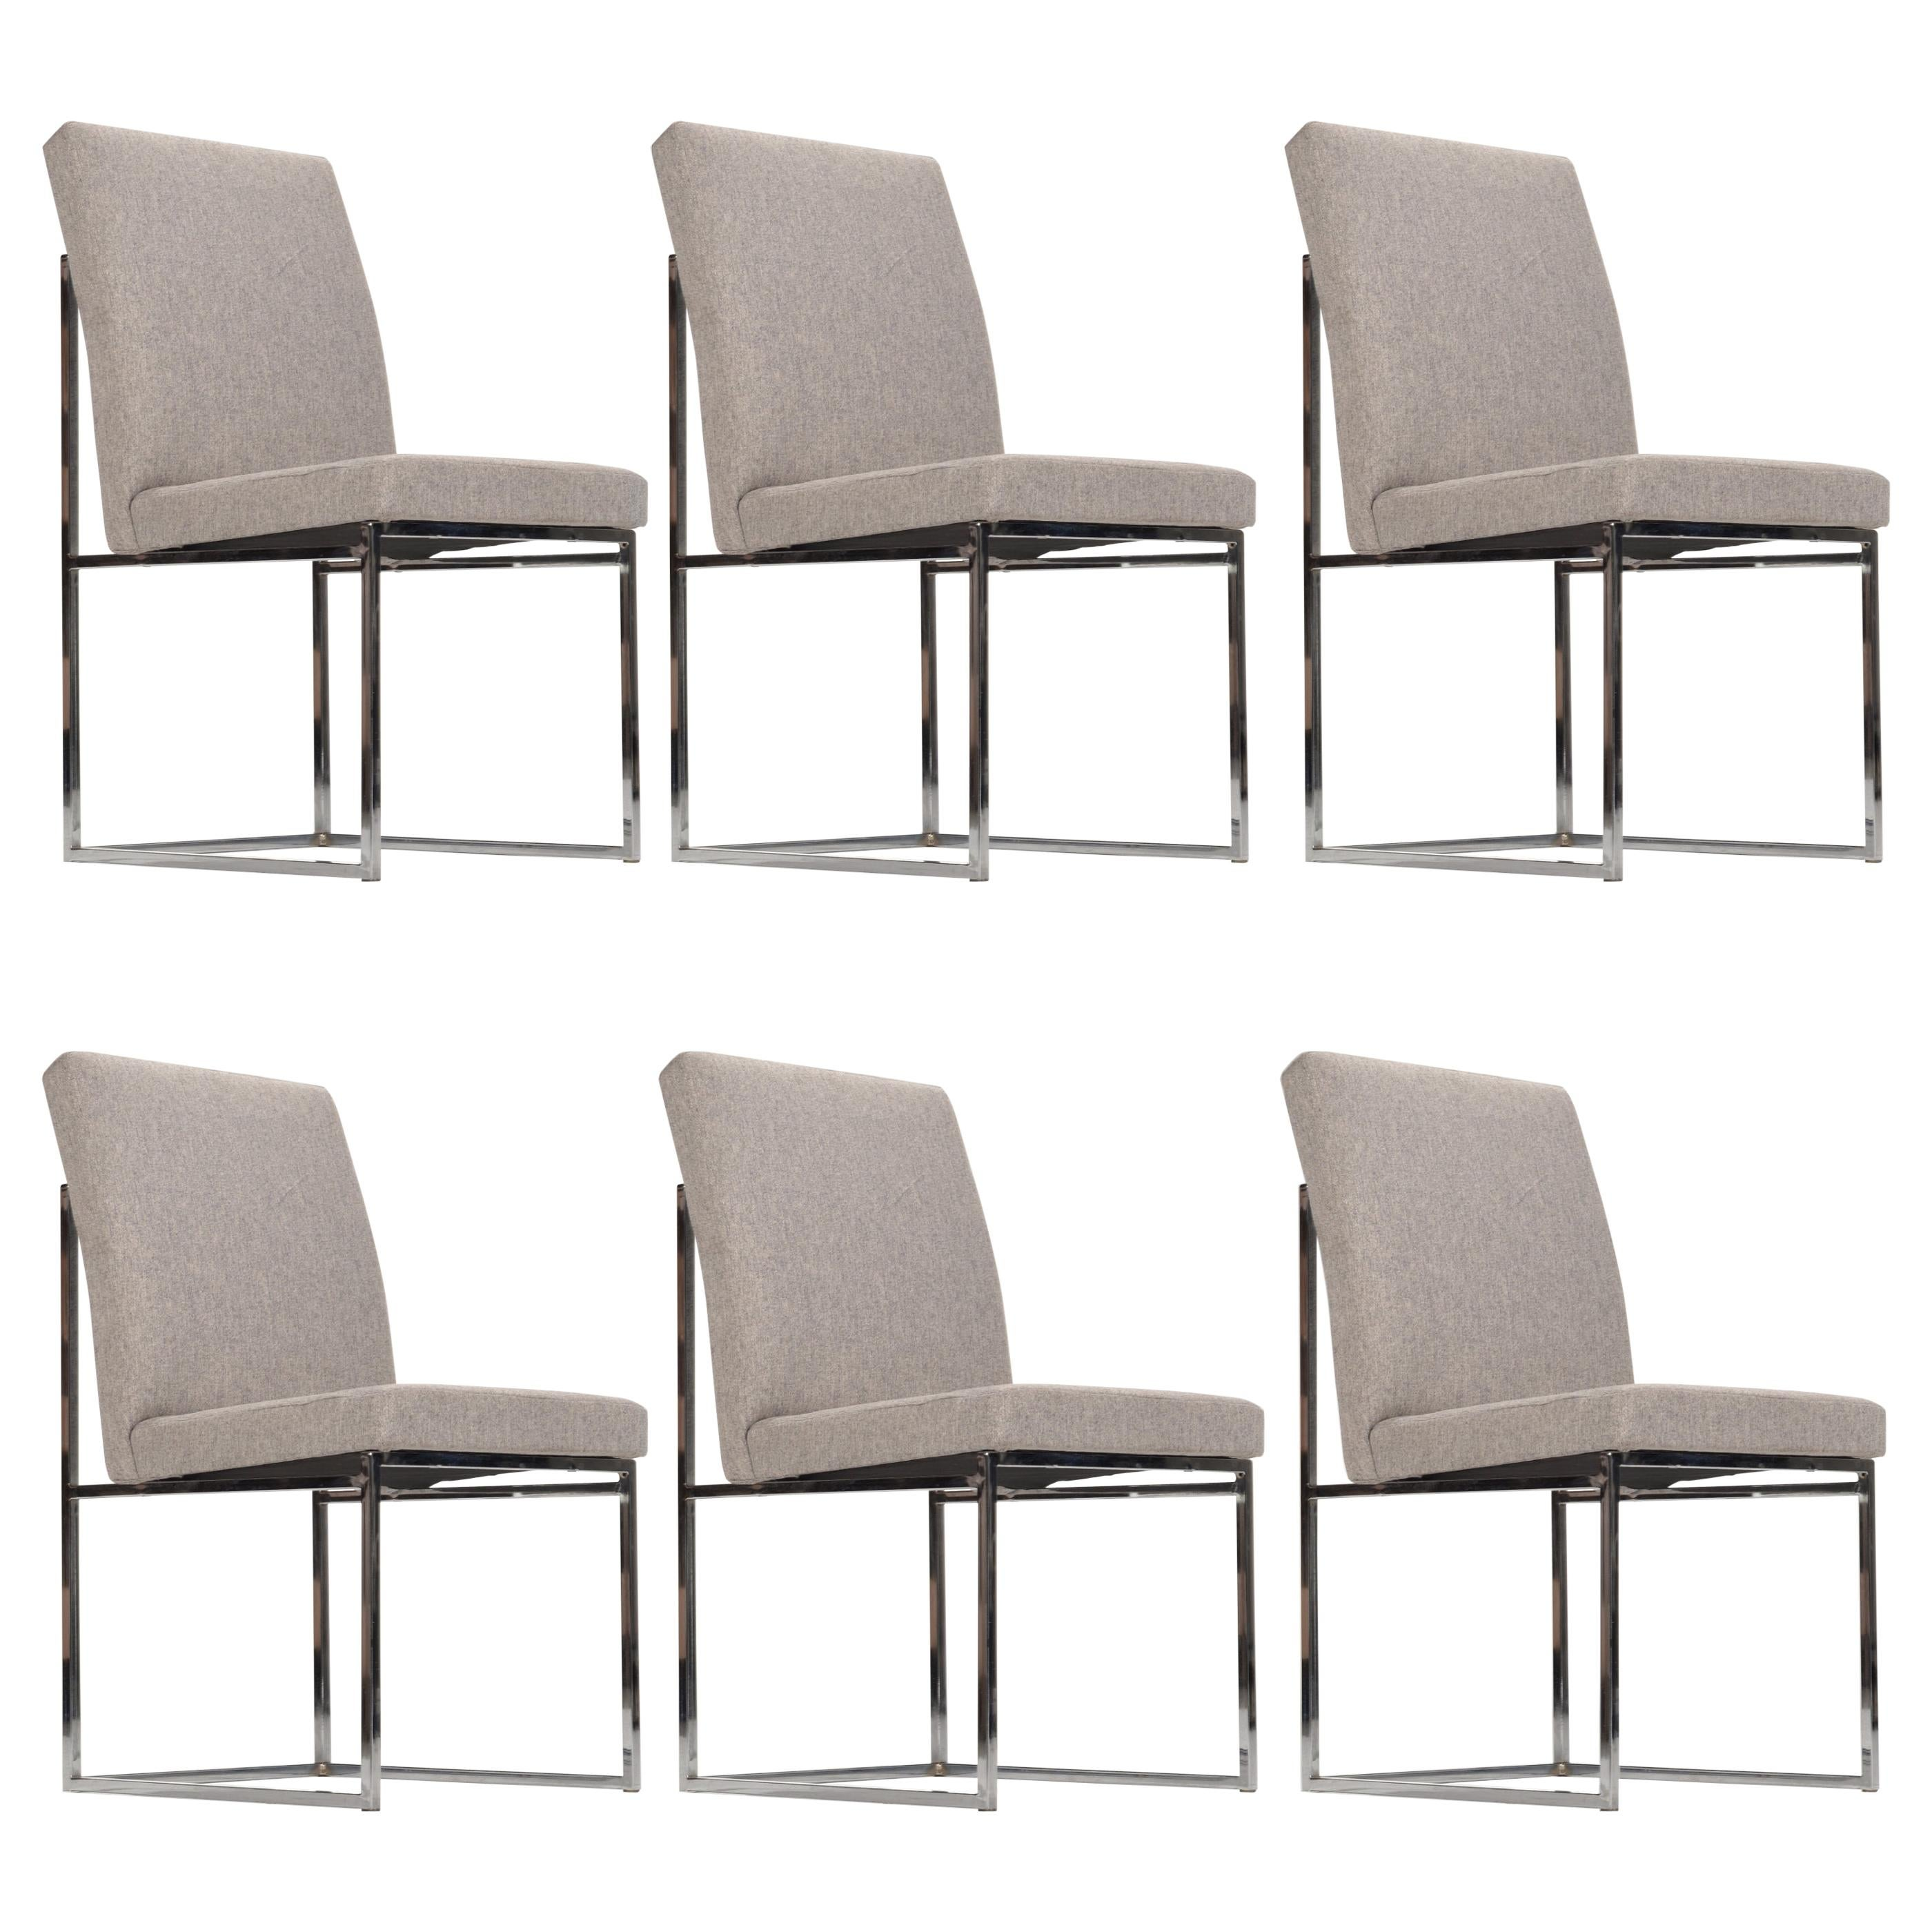 Set of 6 Milo Baughman Style Chrome Dining Chairs